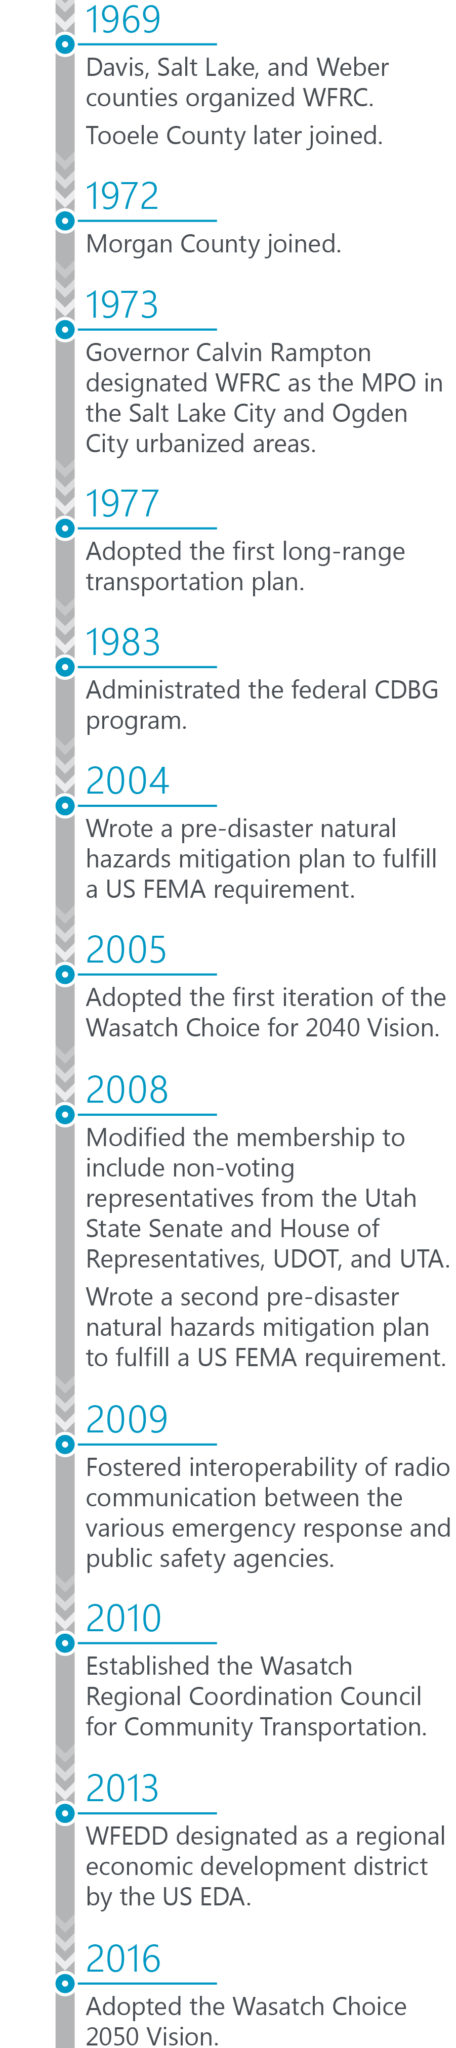 Timeline of WFRC's history.